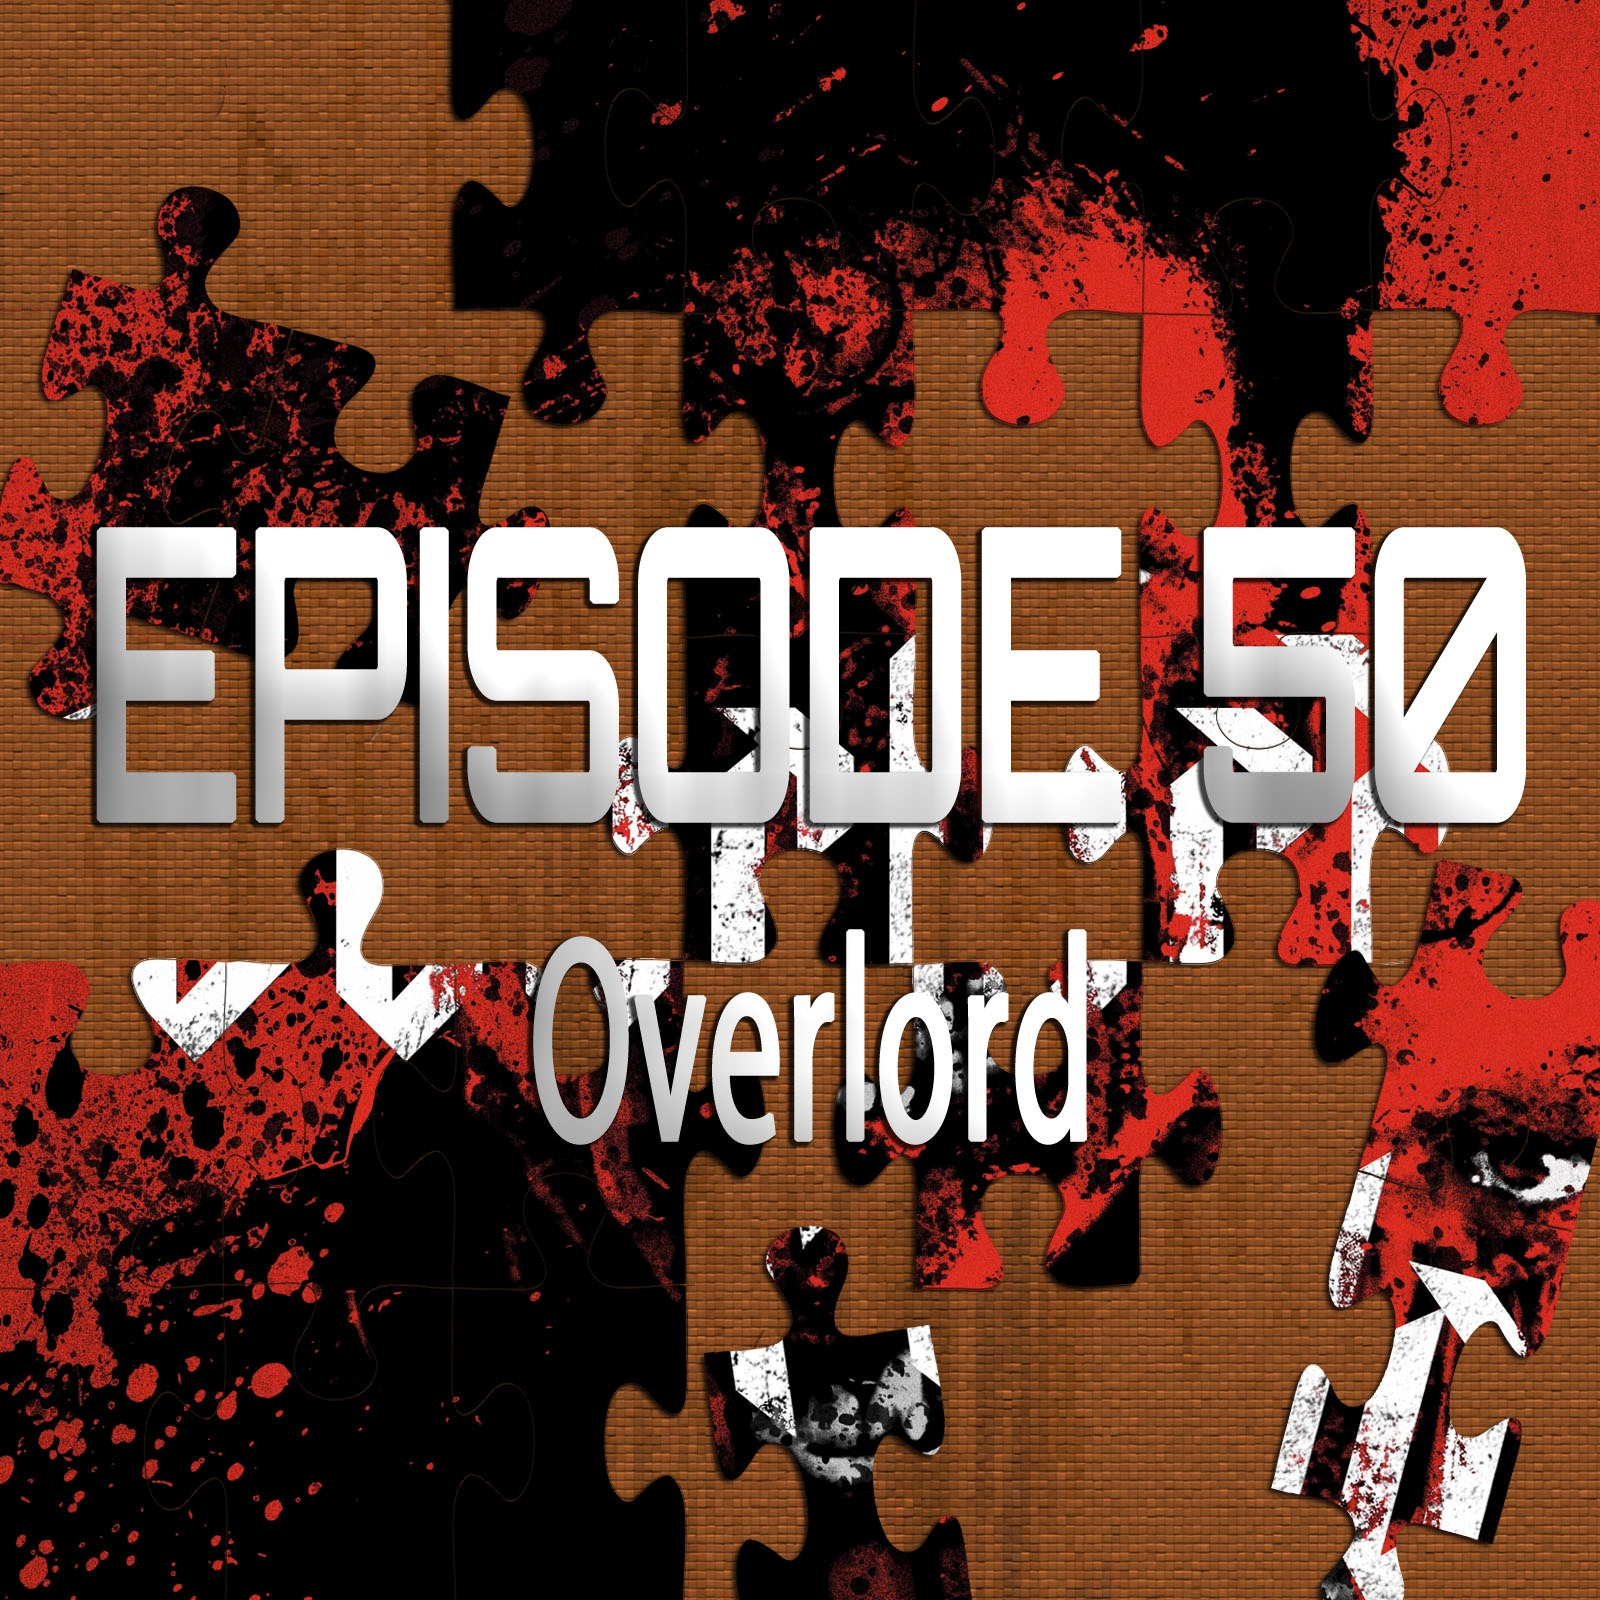 Overlord (Featuring Josh Bell)